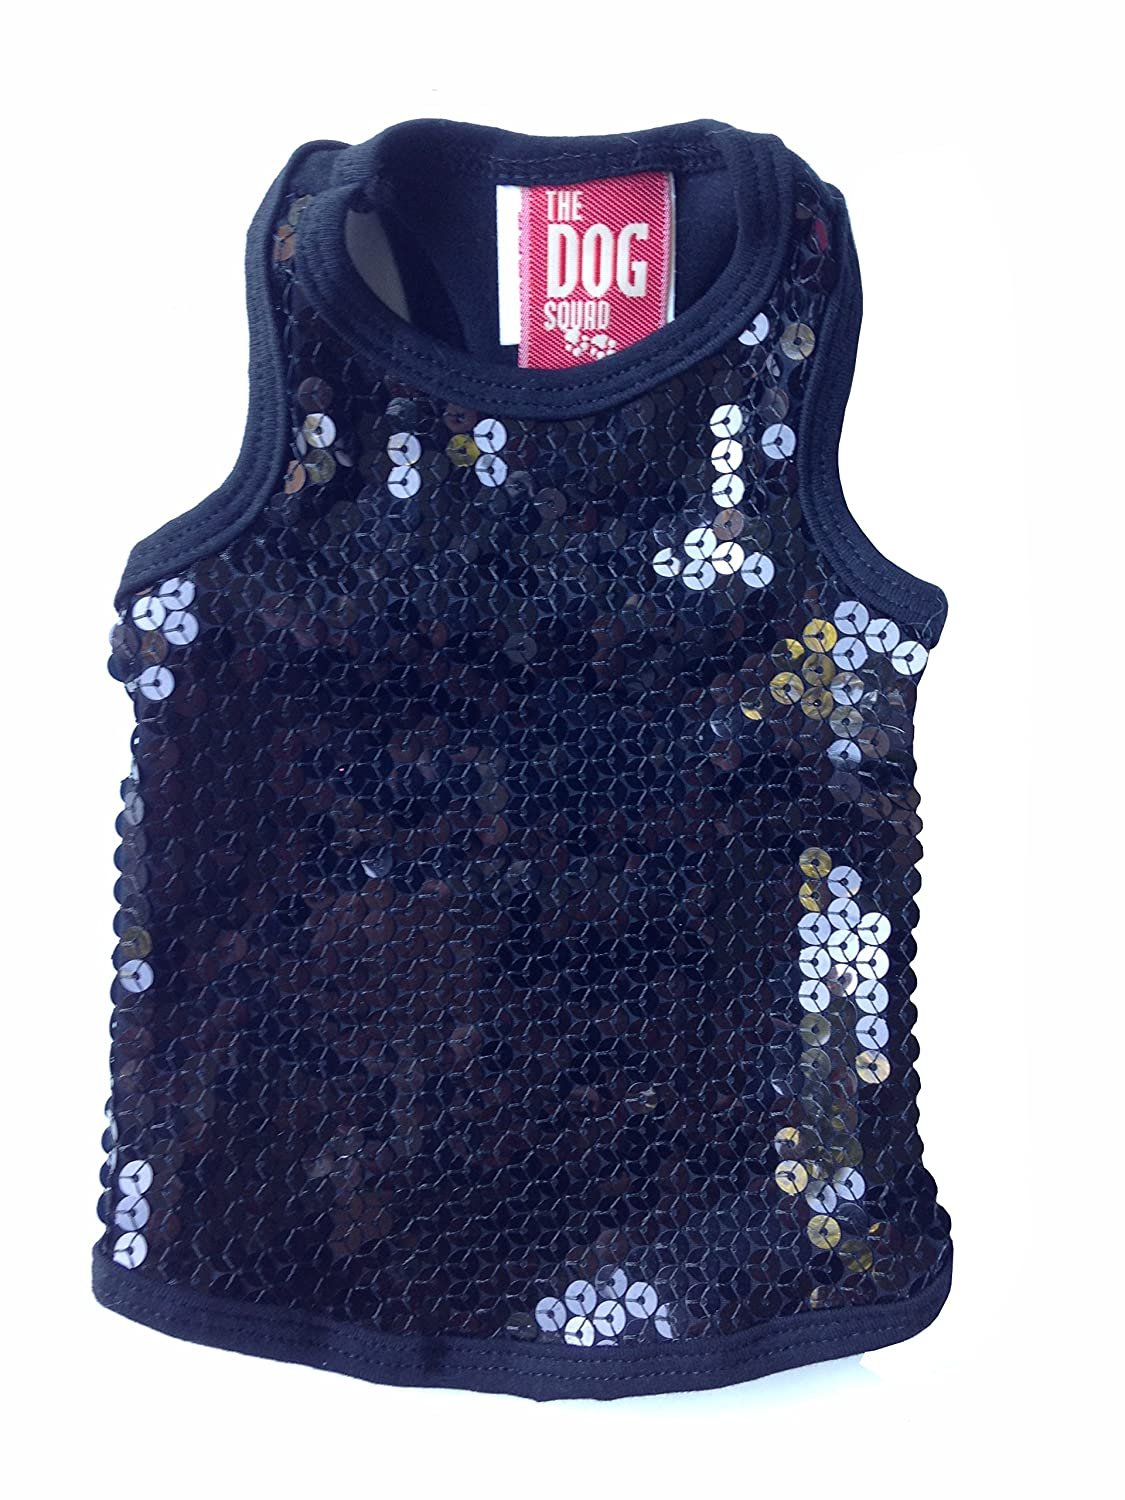 The Dog Squad On The Rocks Tank Top for Dogs, Medium, Black